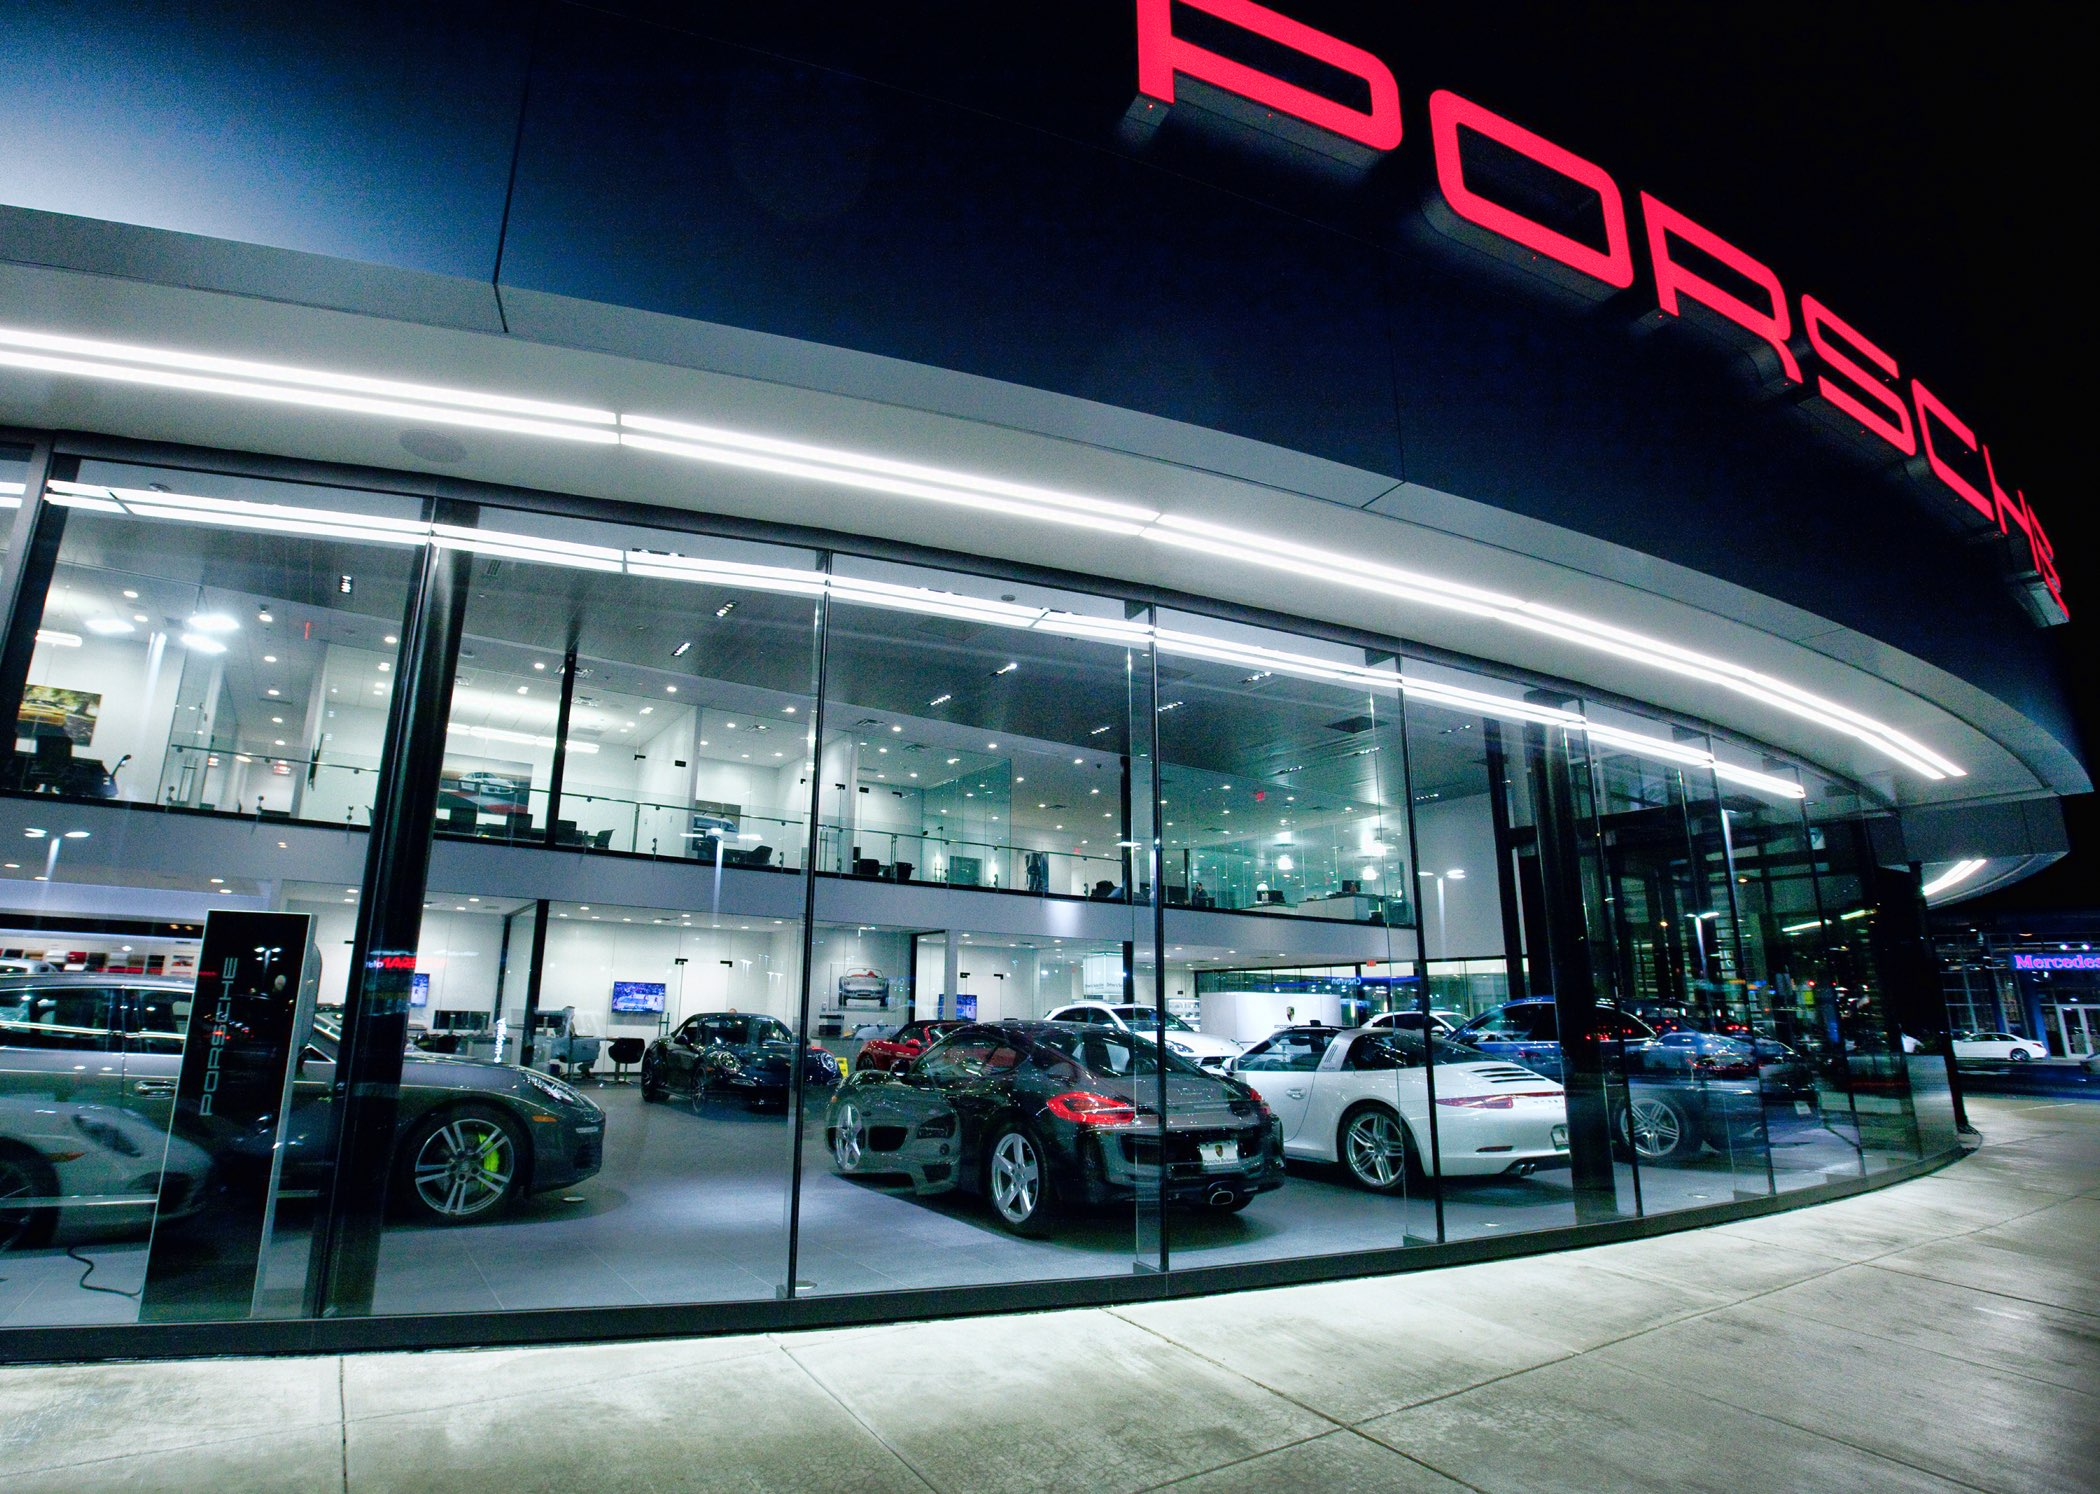 Barrier Porsche Studio Lux